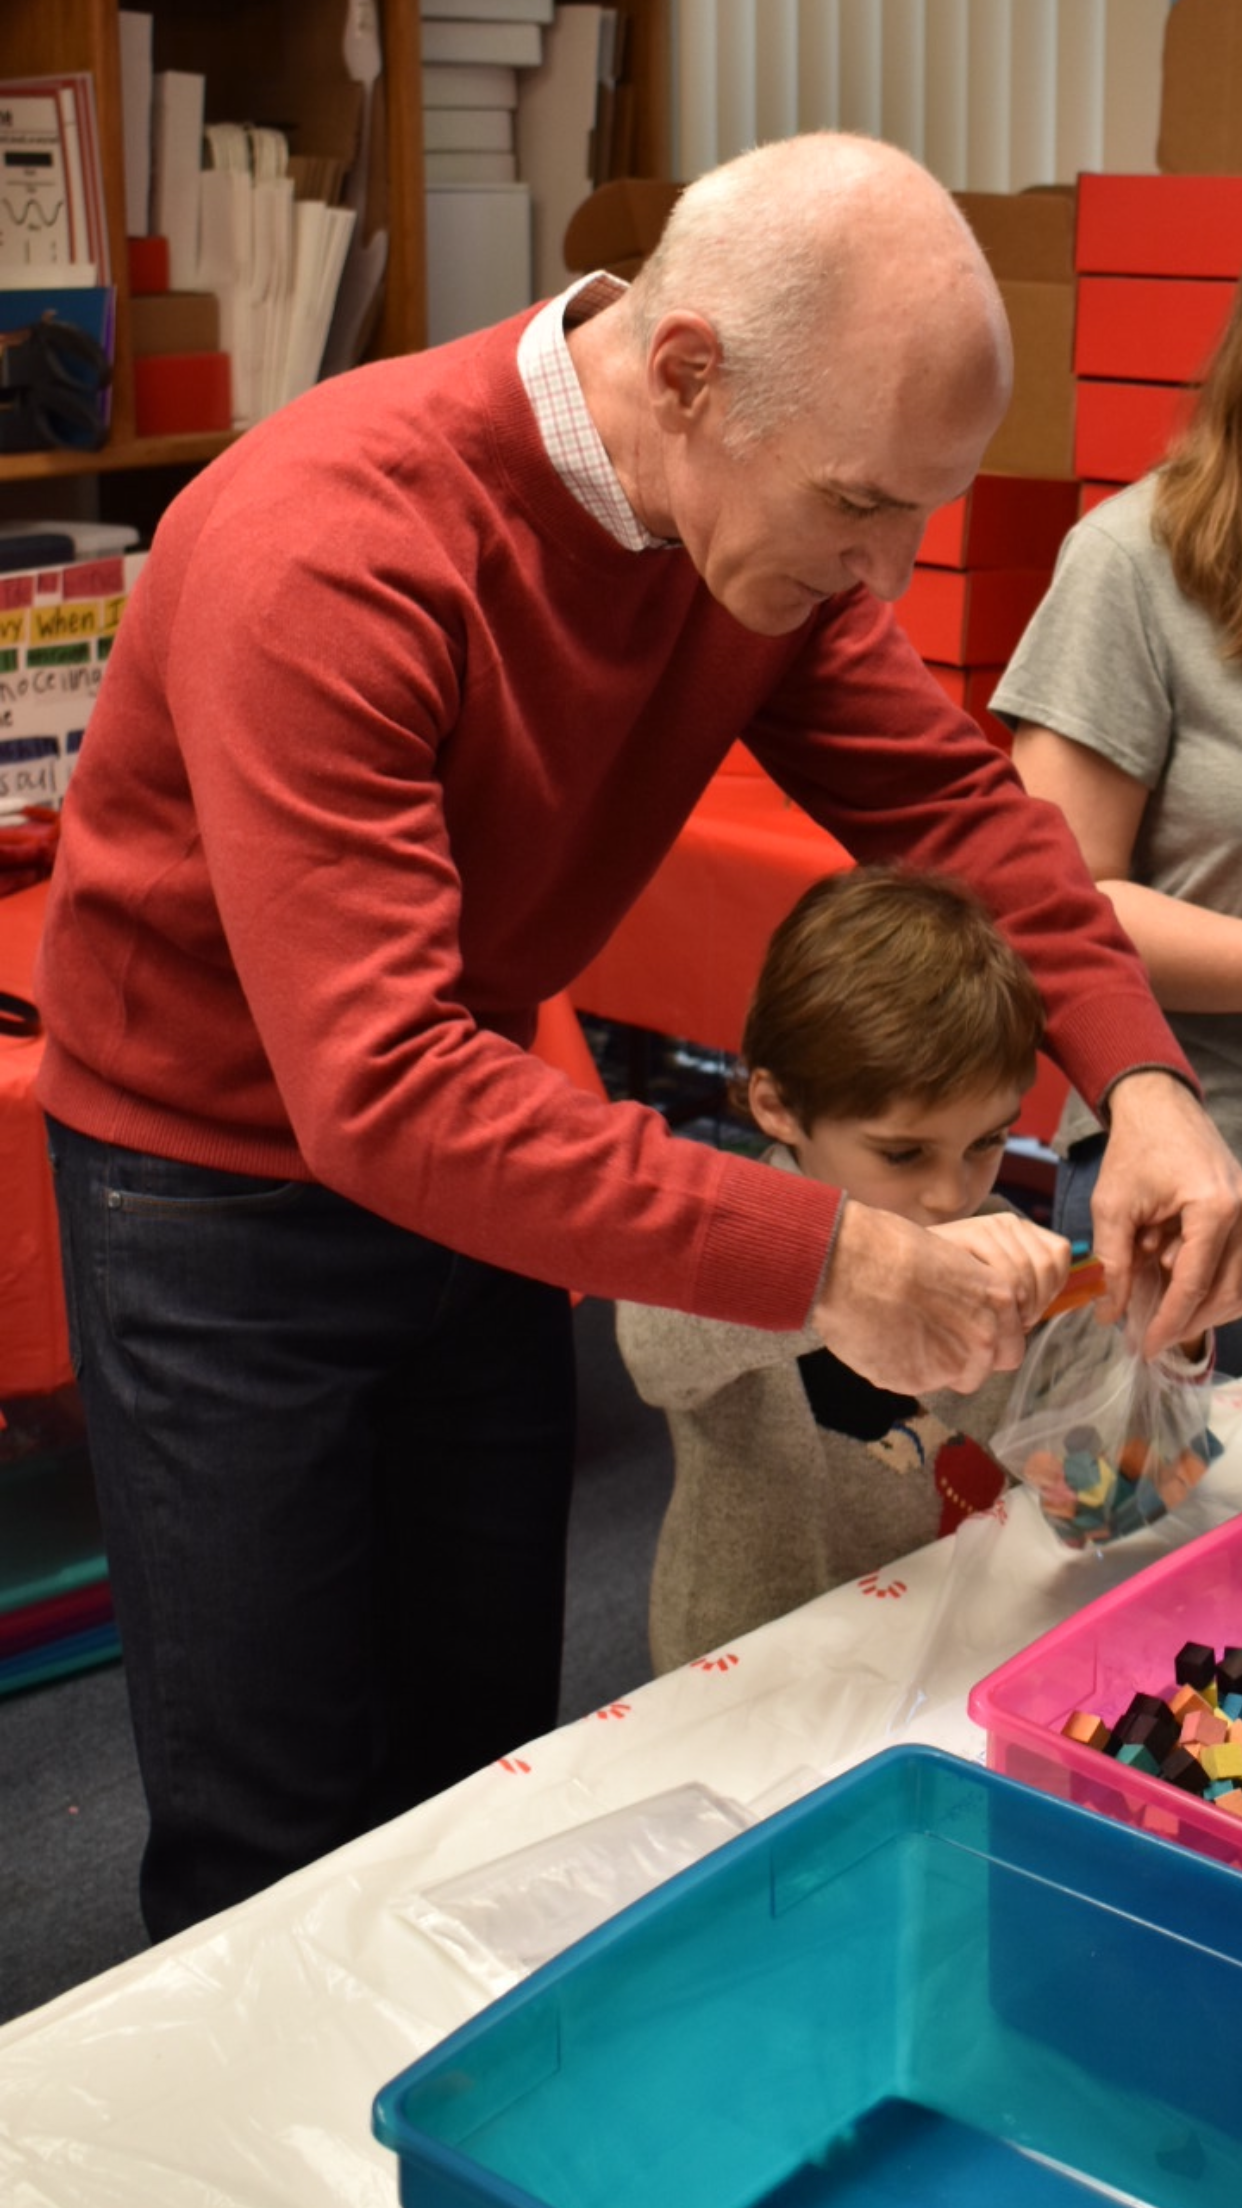 Dominic Iannitti, CEO of DocMagic, and his son Dominic Jr., helping with the Art Box project